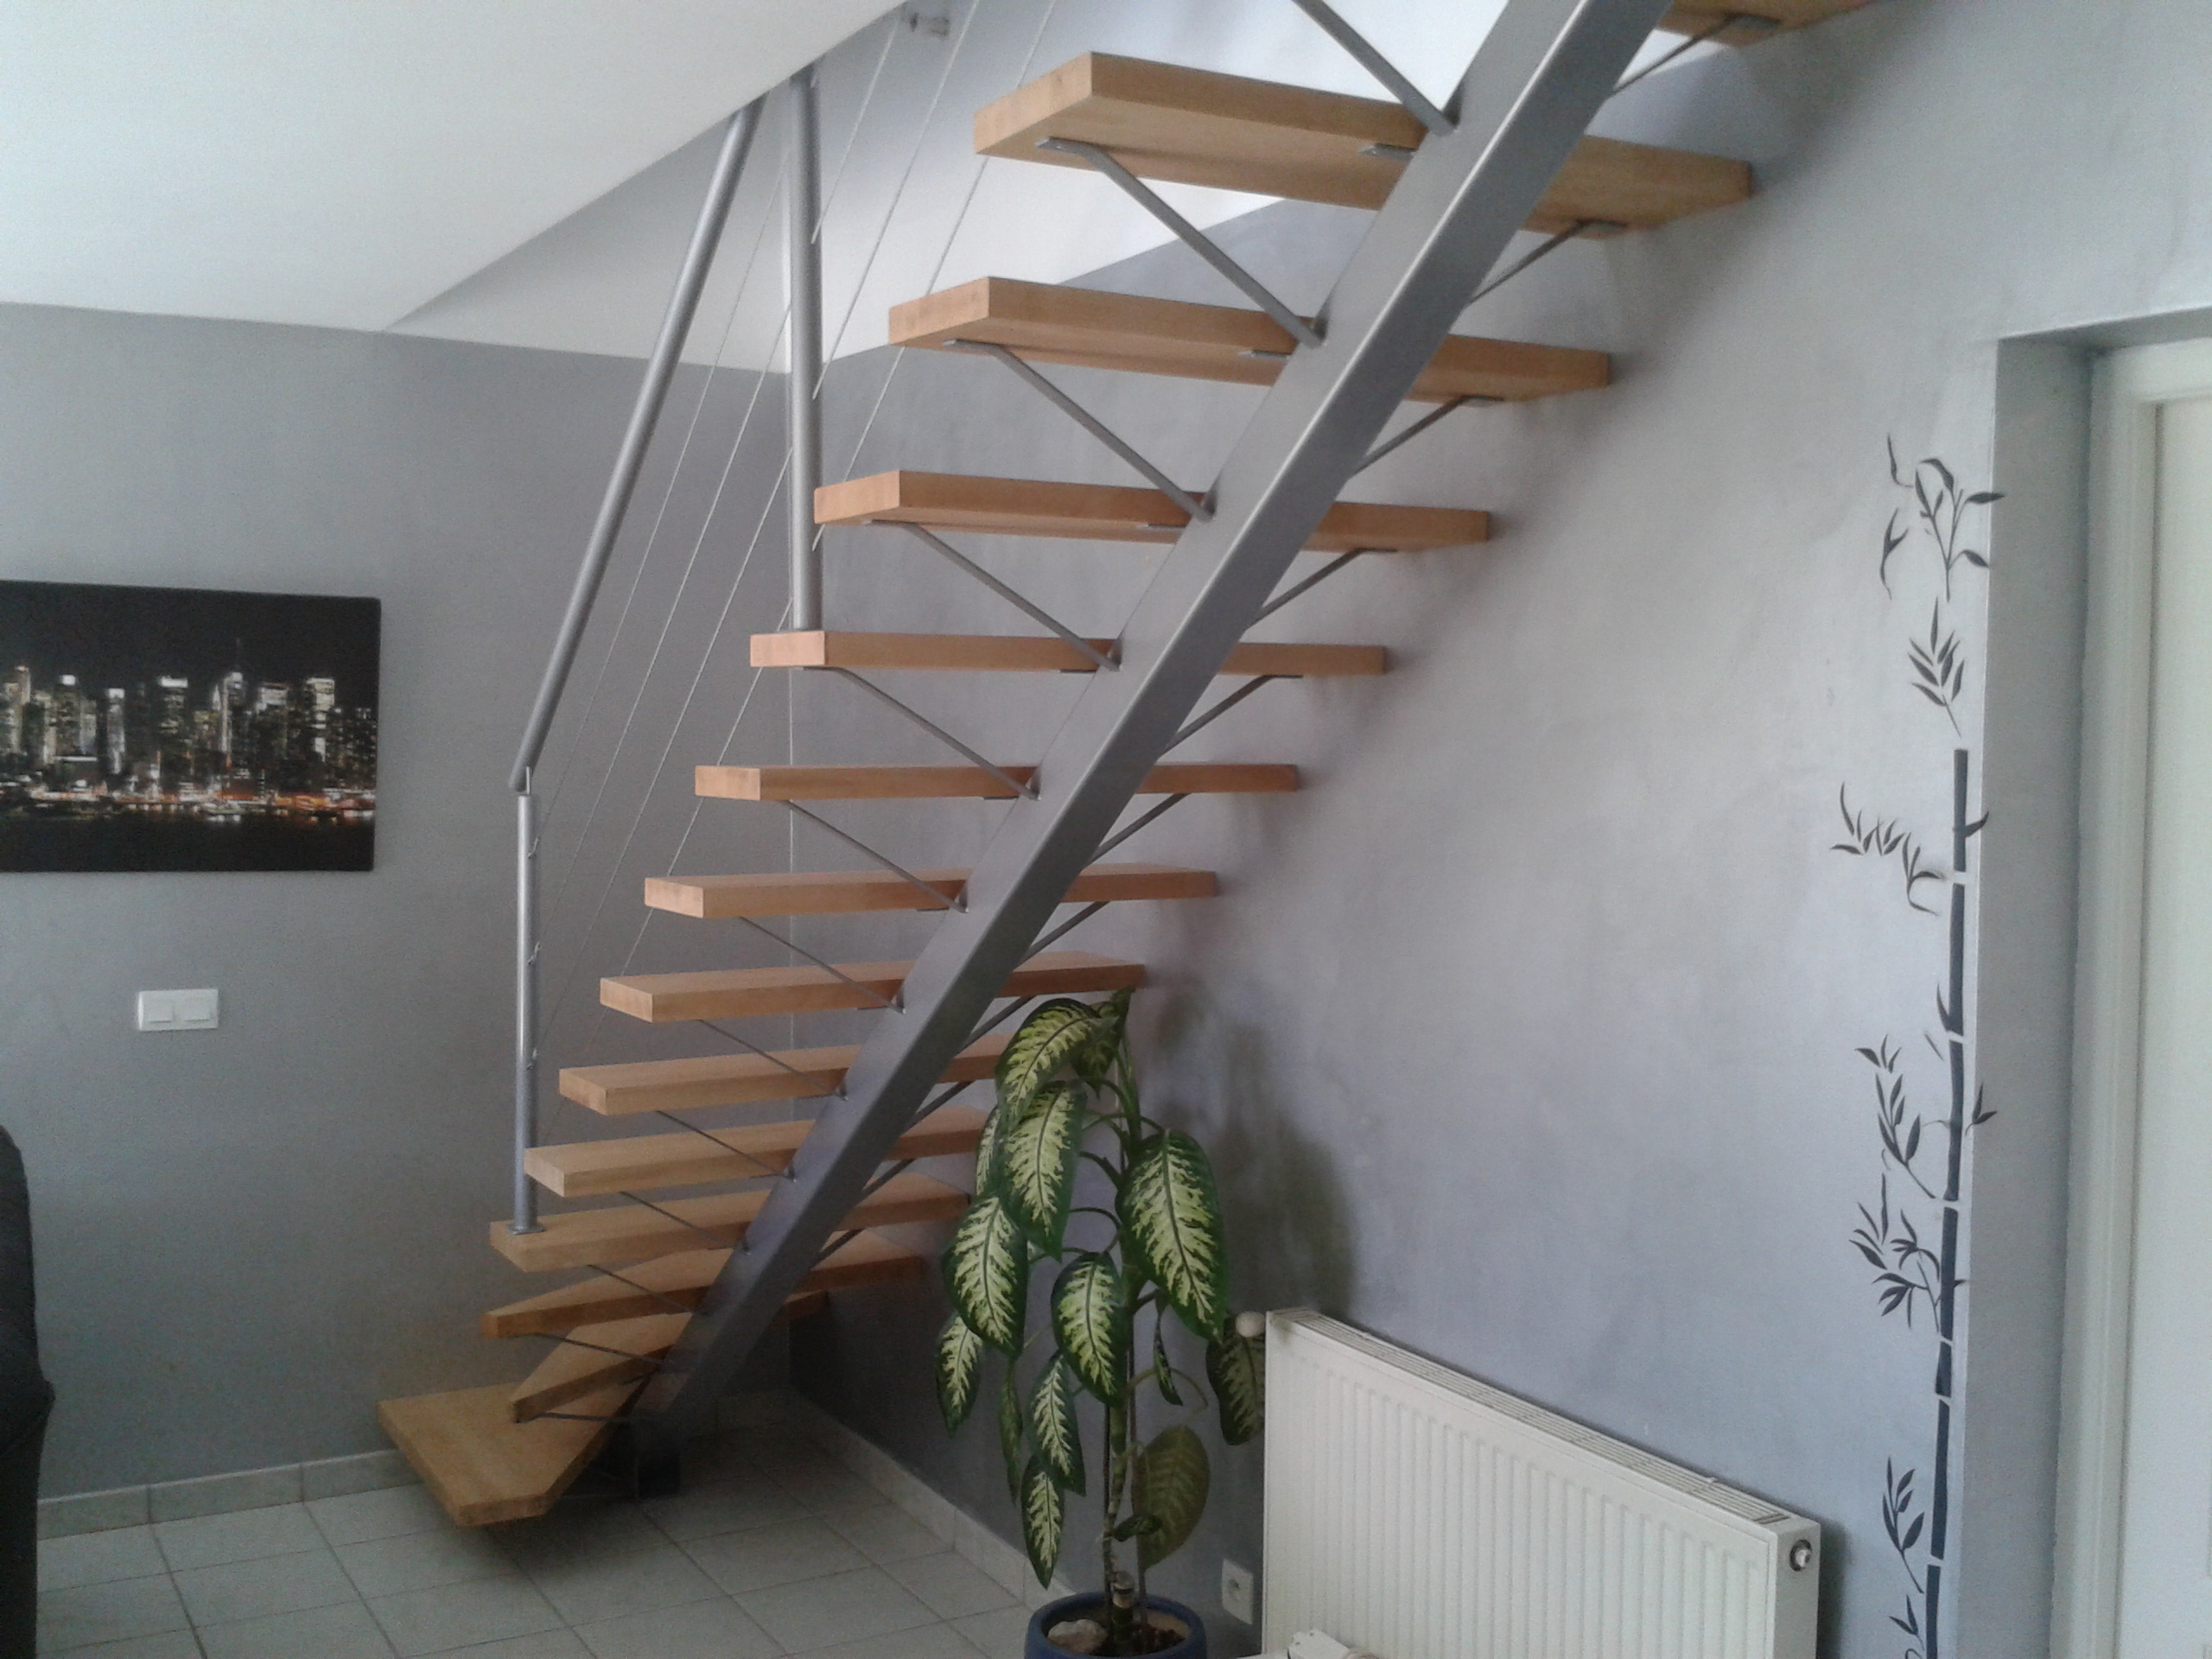 Escalier limon central jhm construction m tallique - Escalier a limon central ...